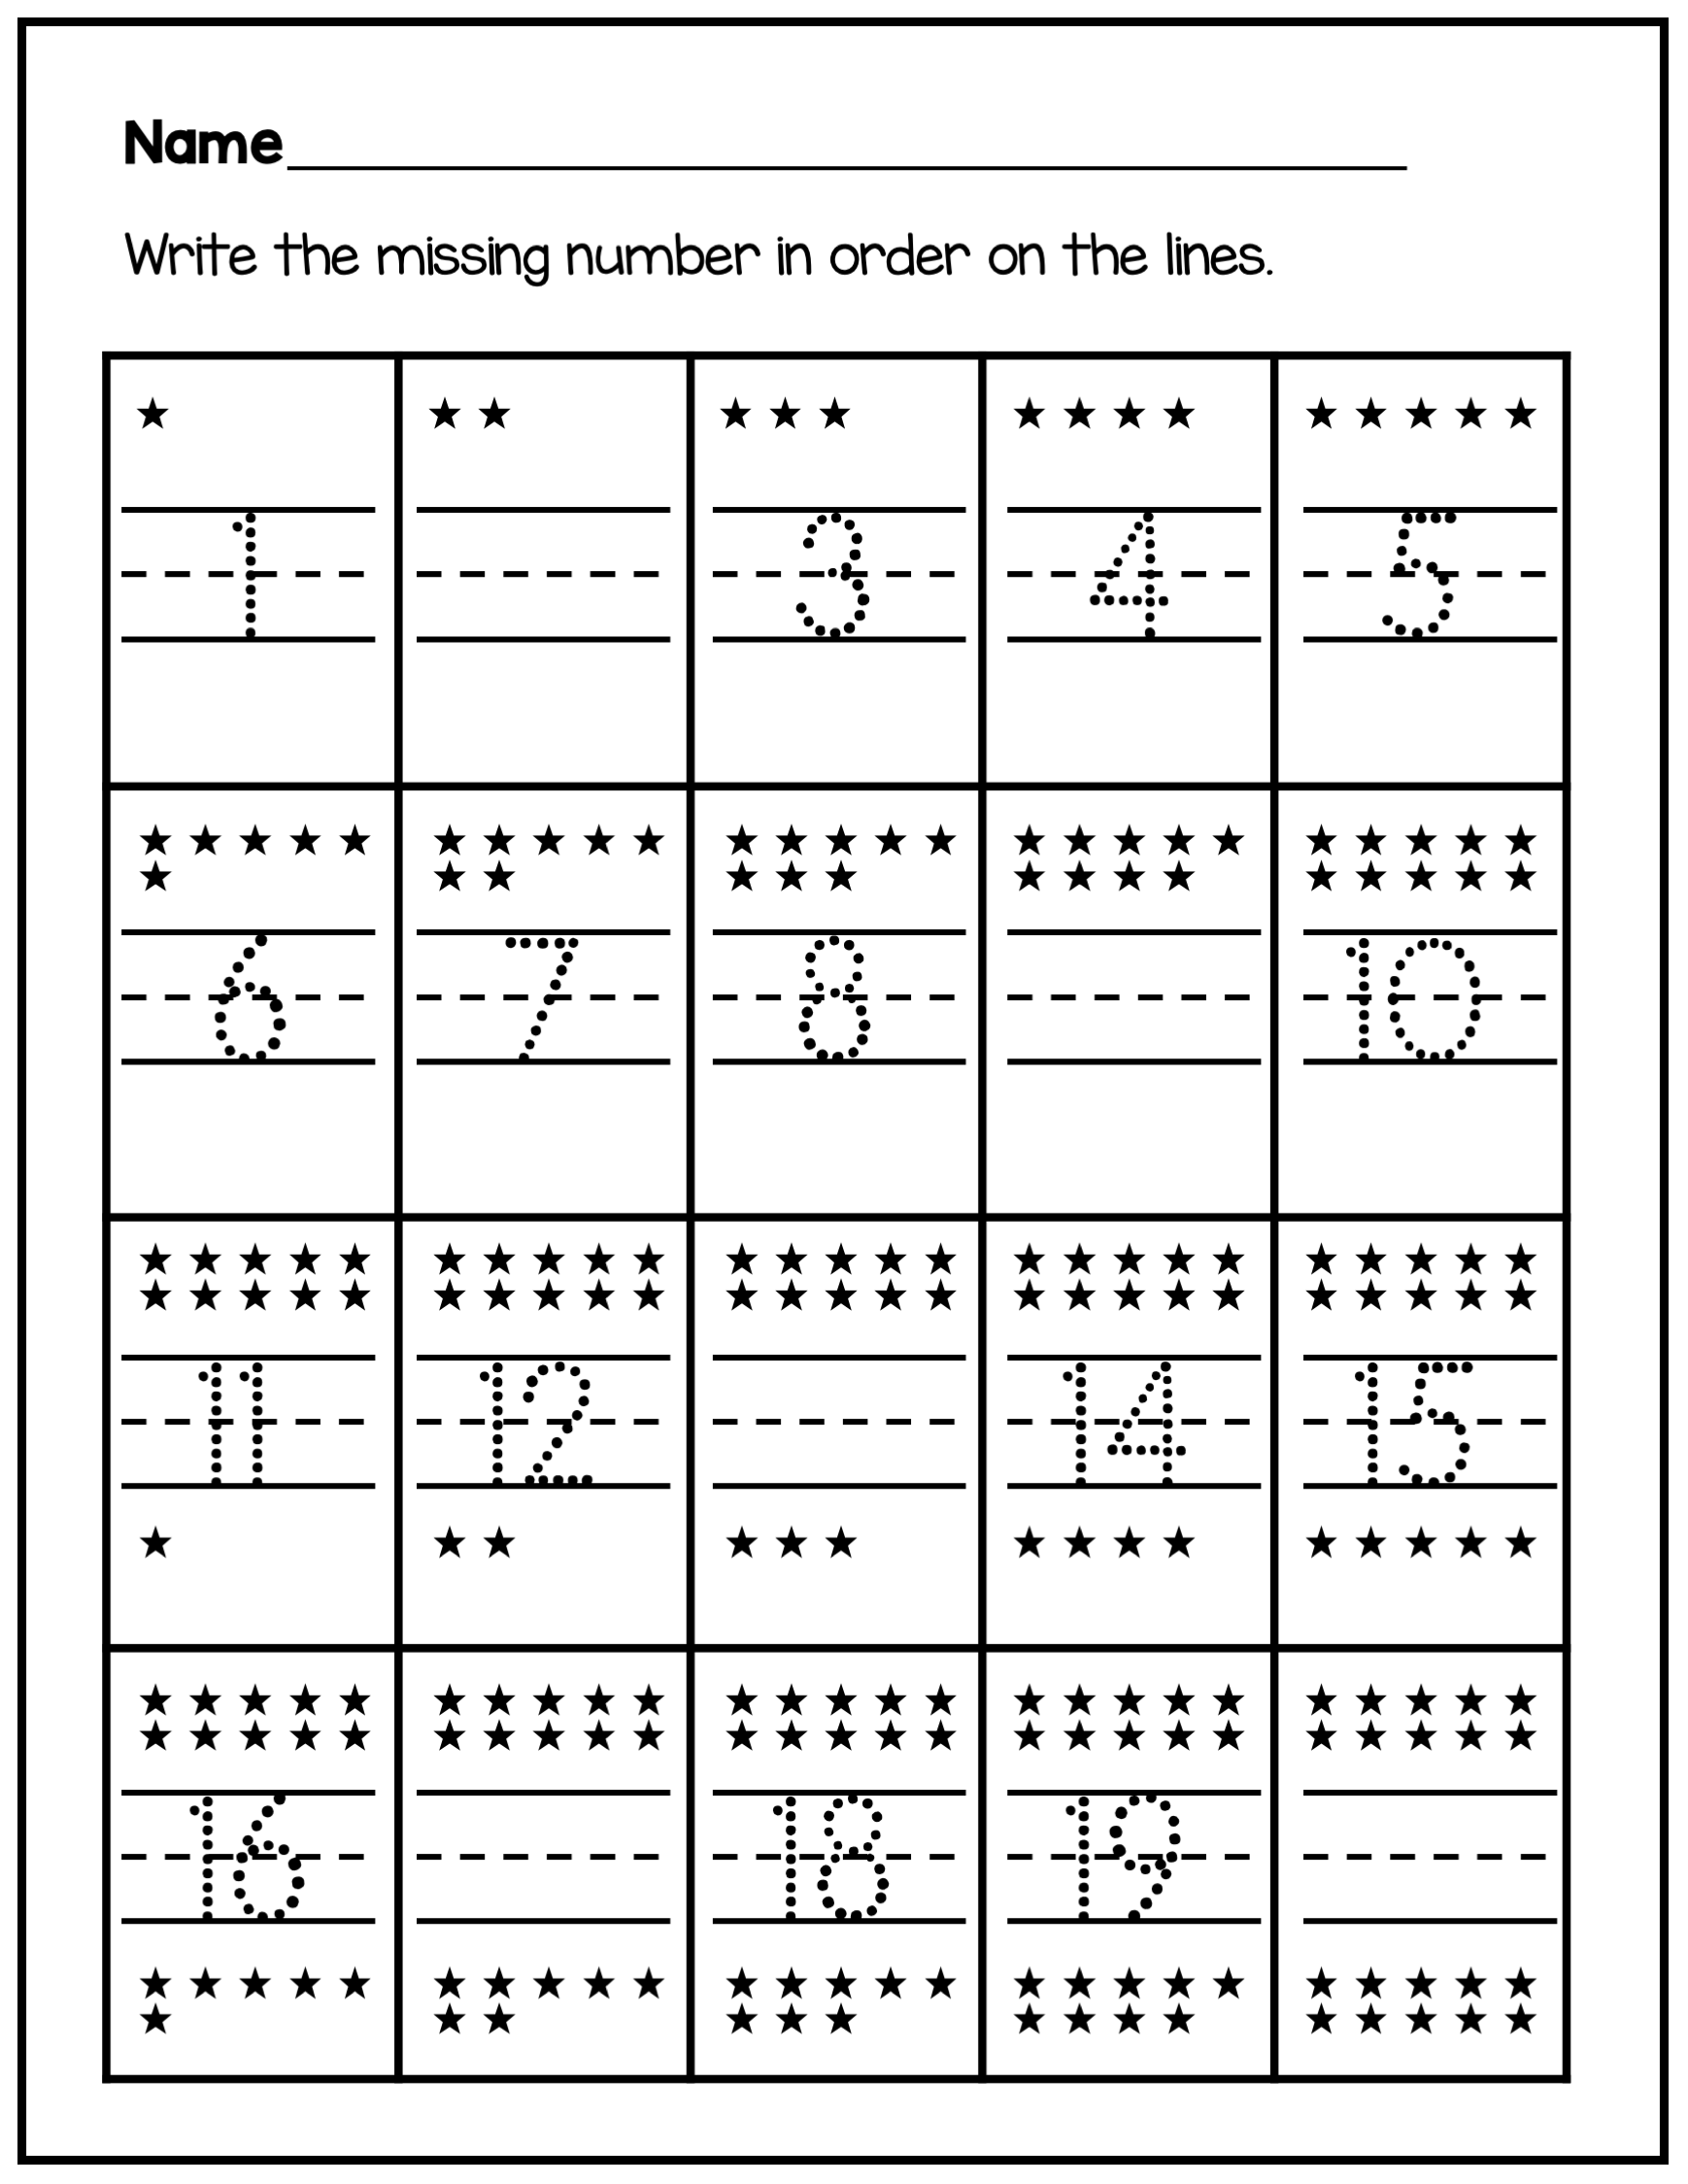 Tracing Numbers 1 20 And Fill In The Missing Number In